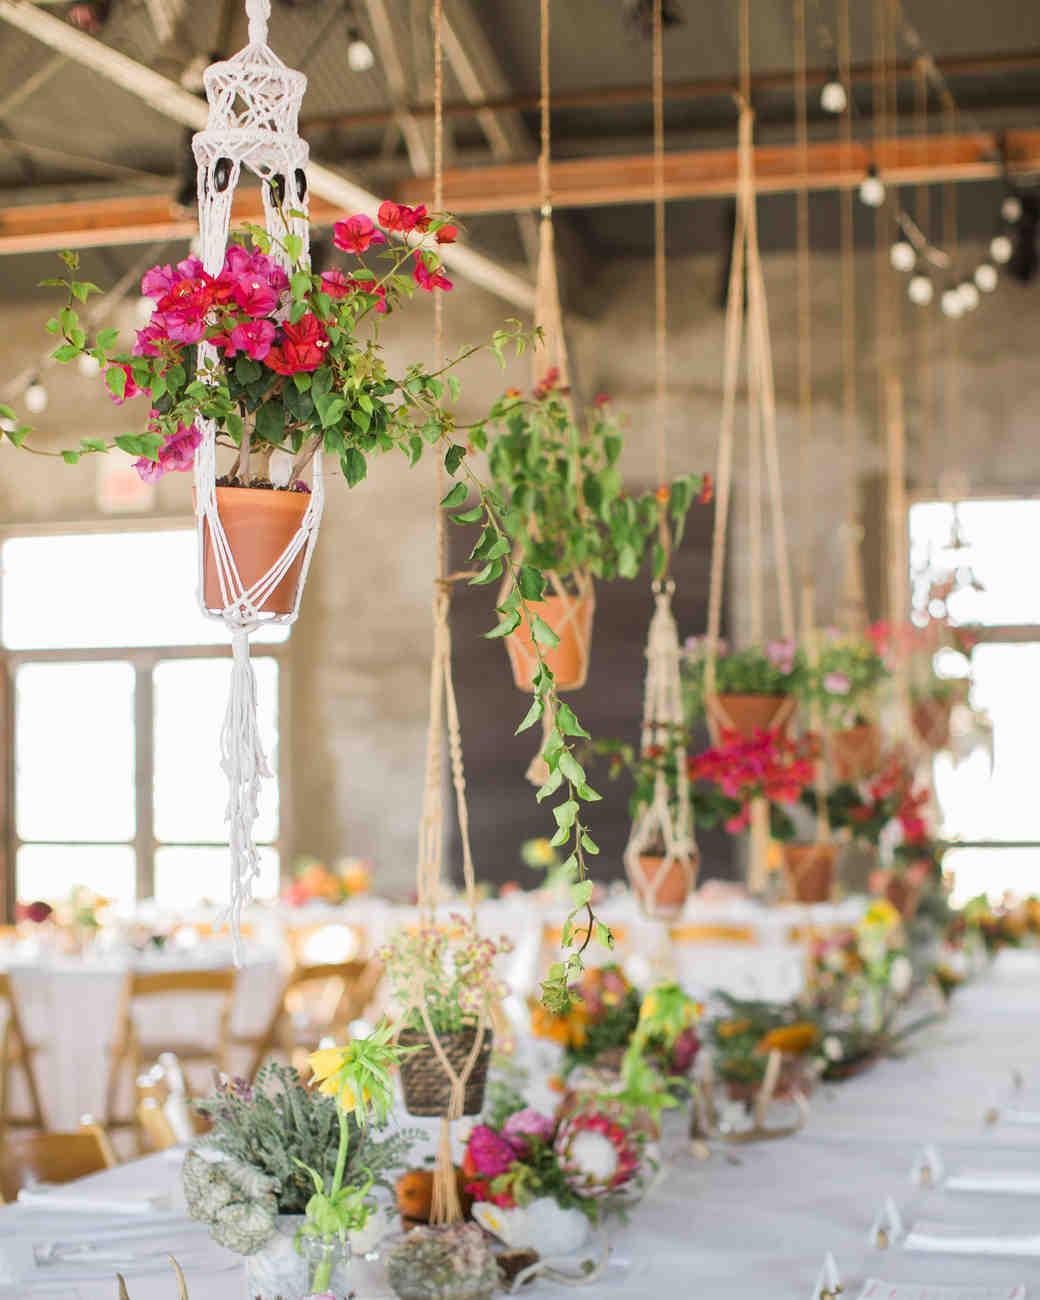 Ideas For Wedding Flowers: Boho-Chic Wedding Ideas For Free-Spirited Brides And